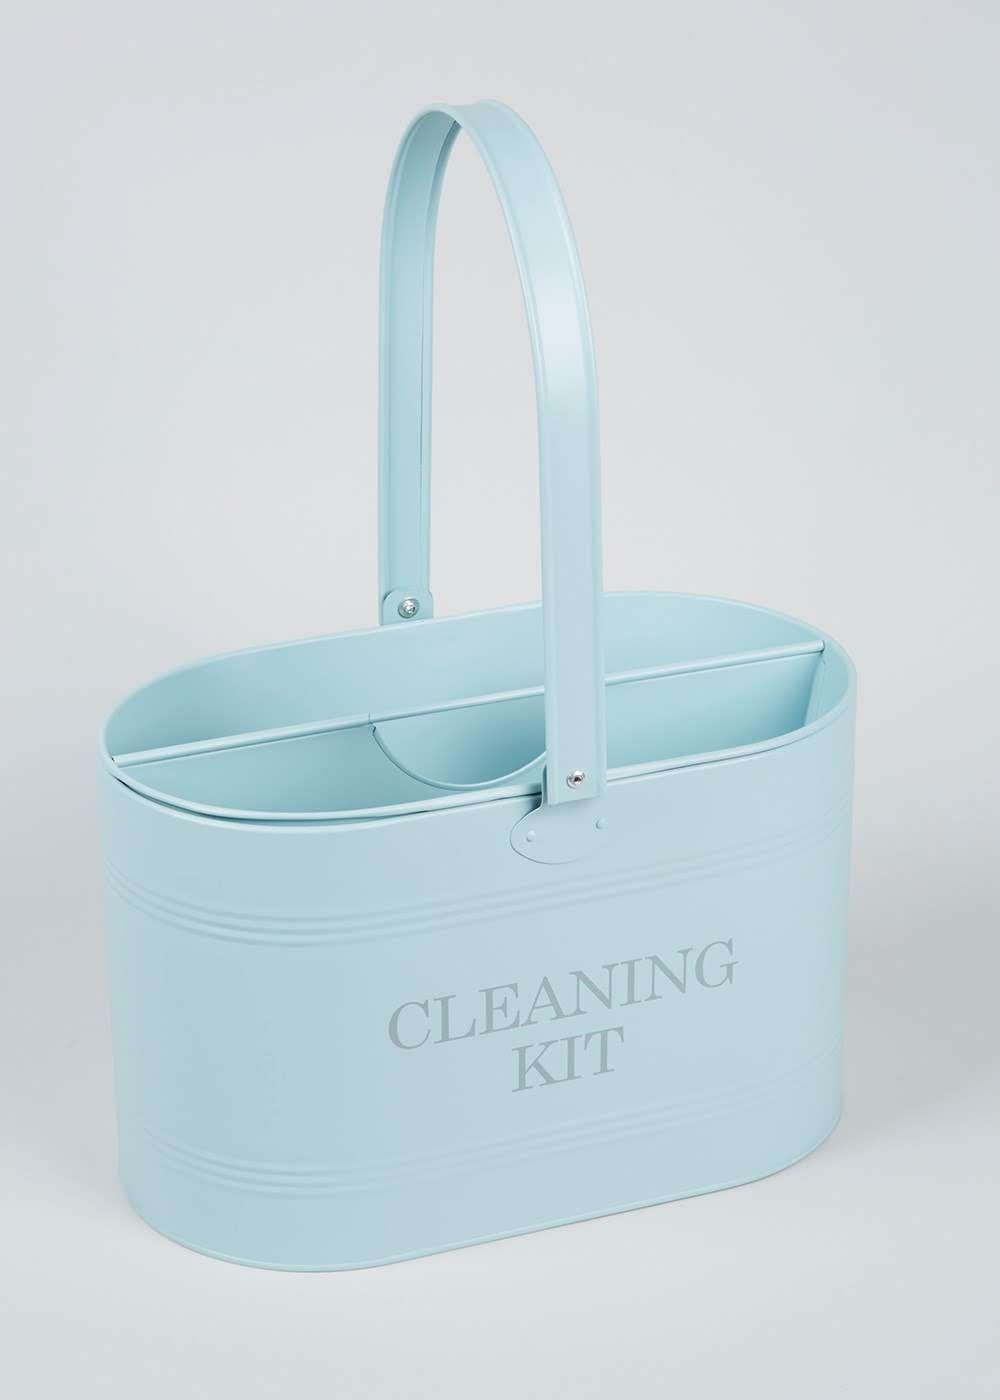 Metal Cleaning Caddy Tin (34cm x 22cm x 20cm) View 1 | Bathroom ...